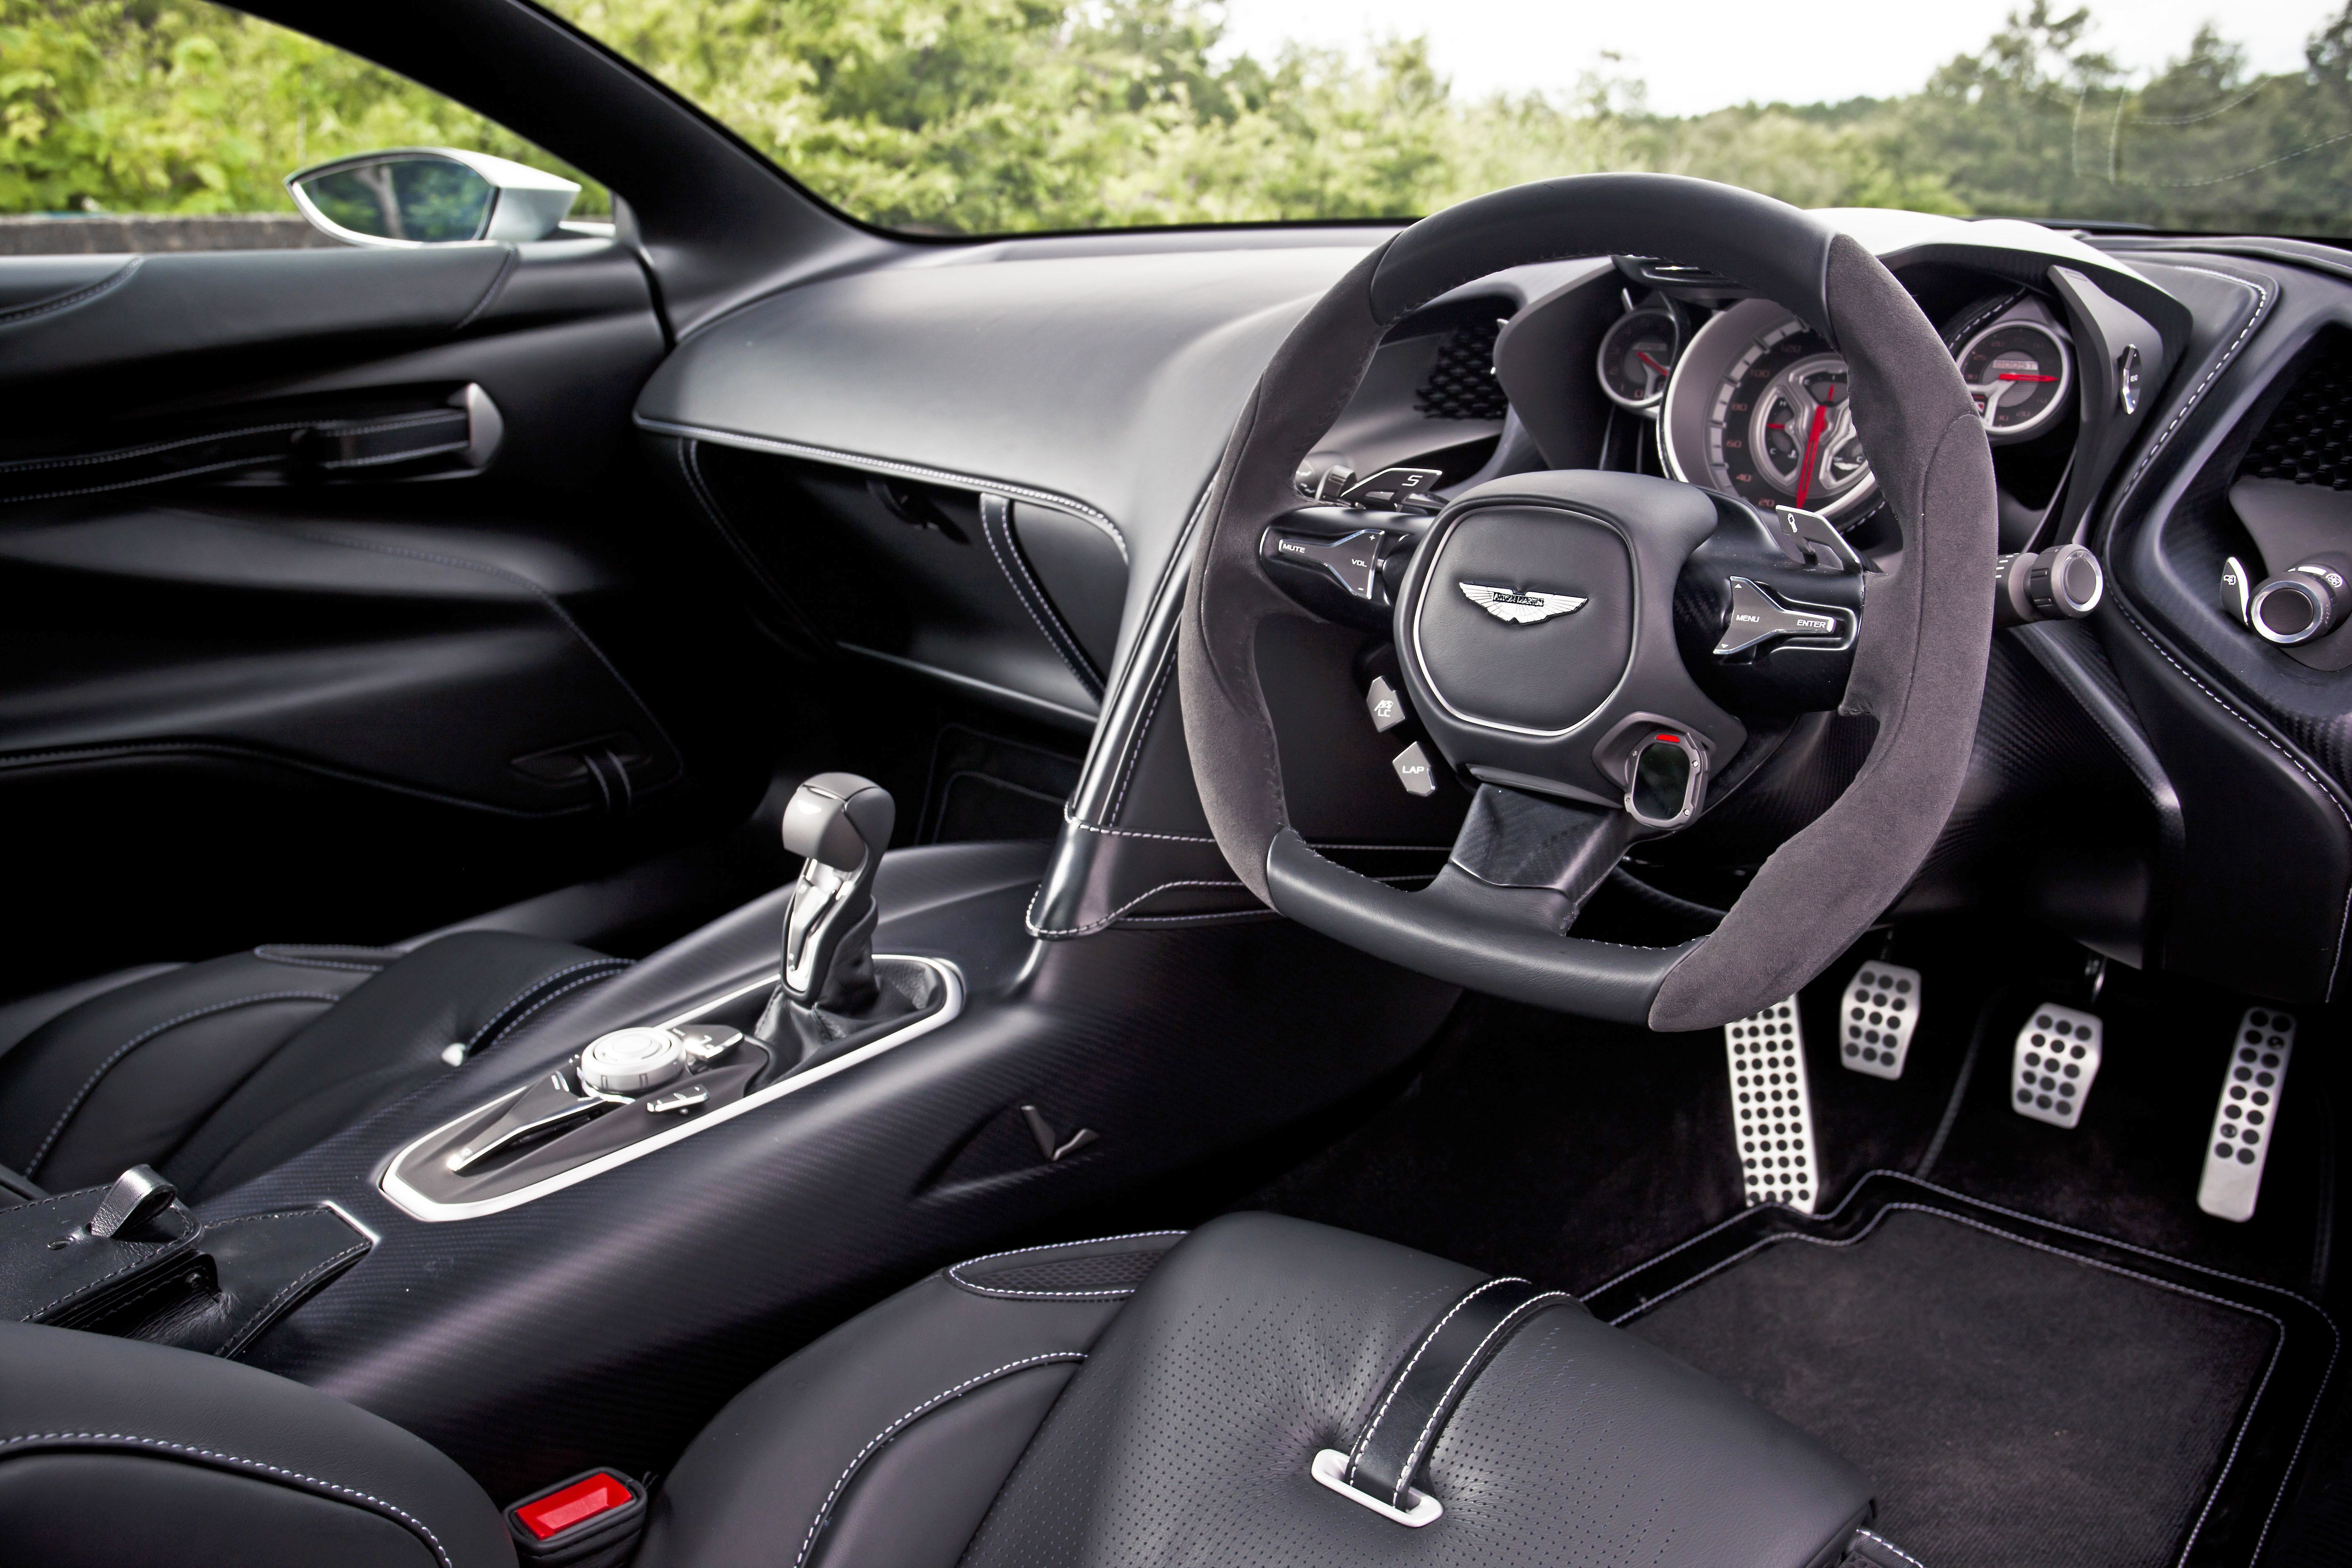 aston martin db10 the most wanted car in the world martin o 39 malley search and aston martin db10. Black Bedroom Furniture Sets. Home Design Ideas